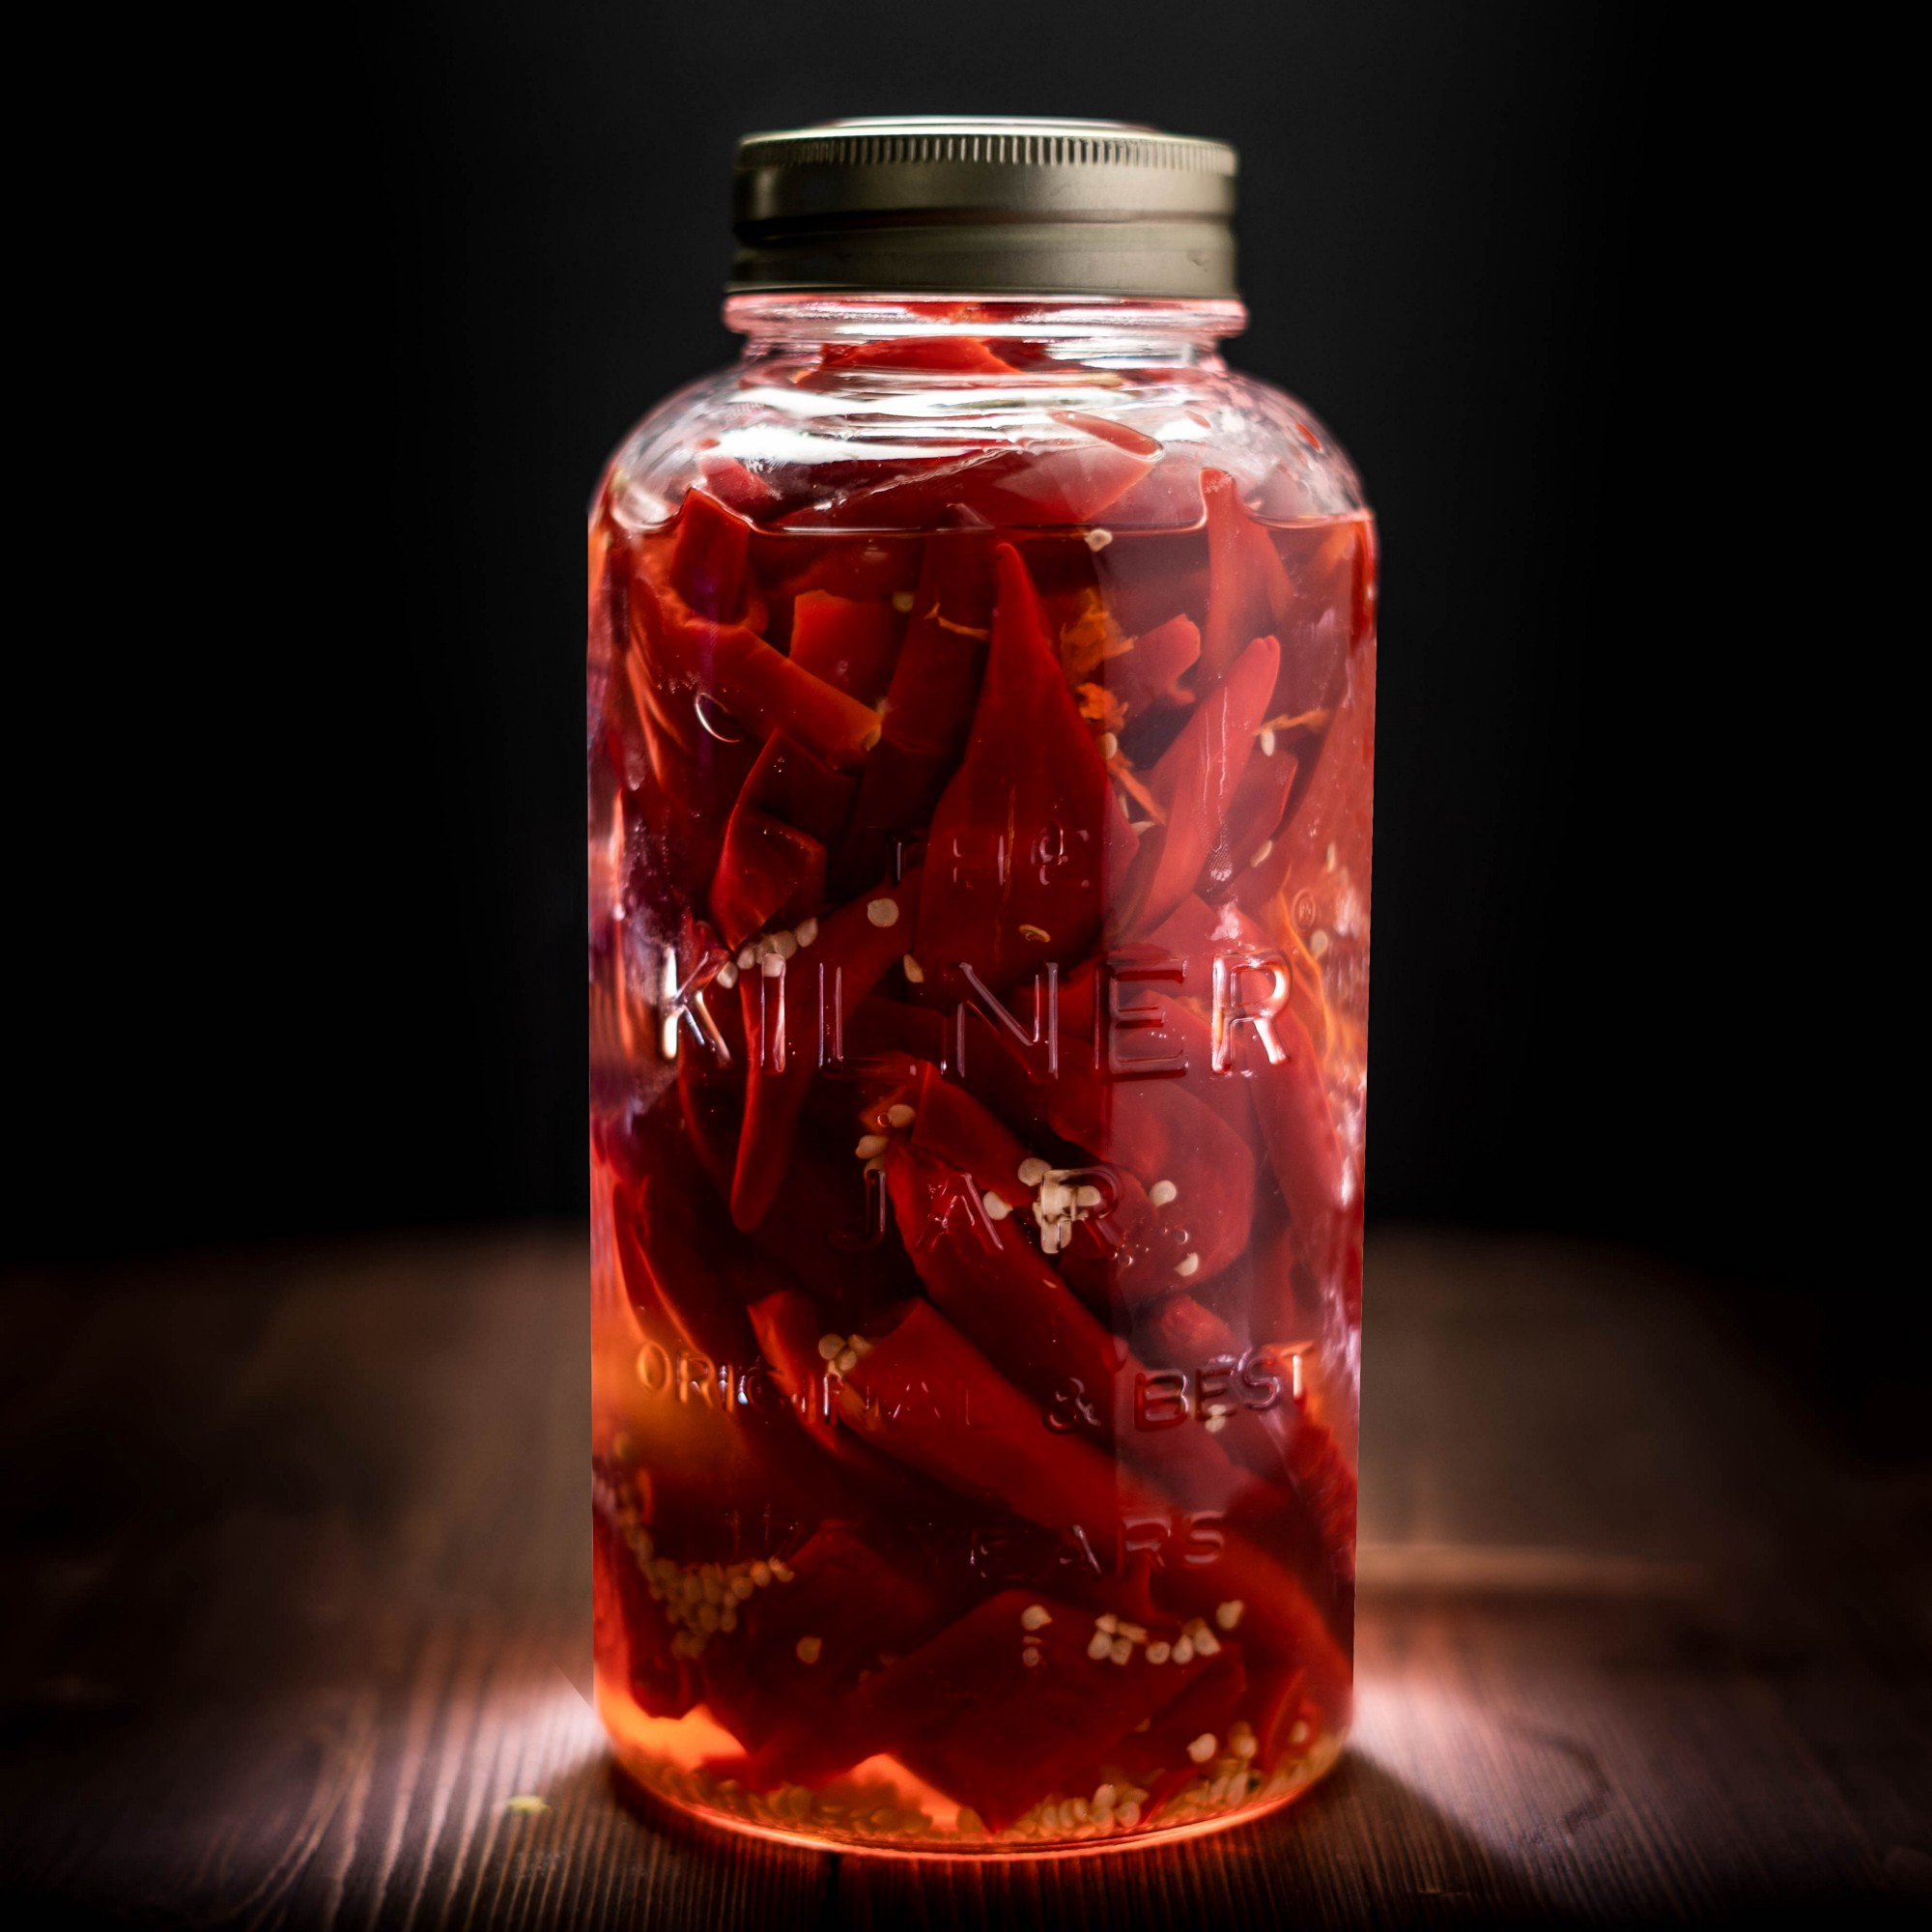 A Kilner jar filled with pickled red chillis